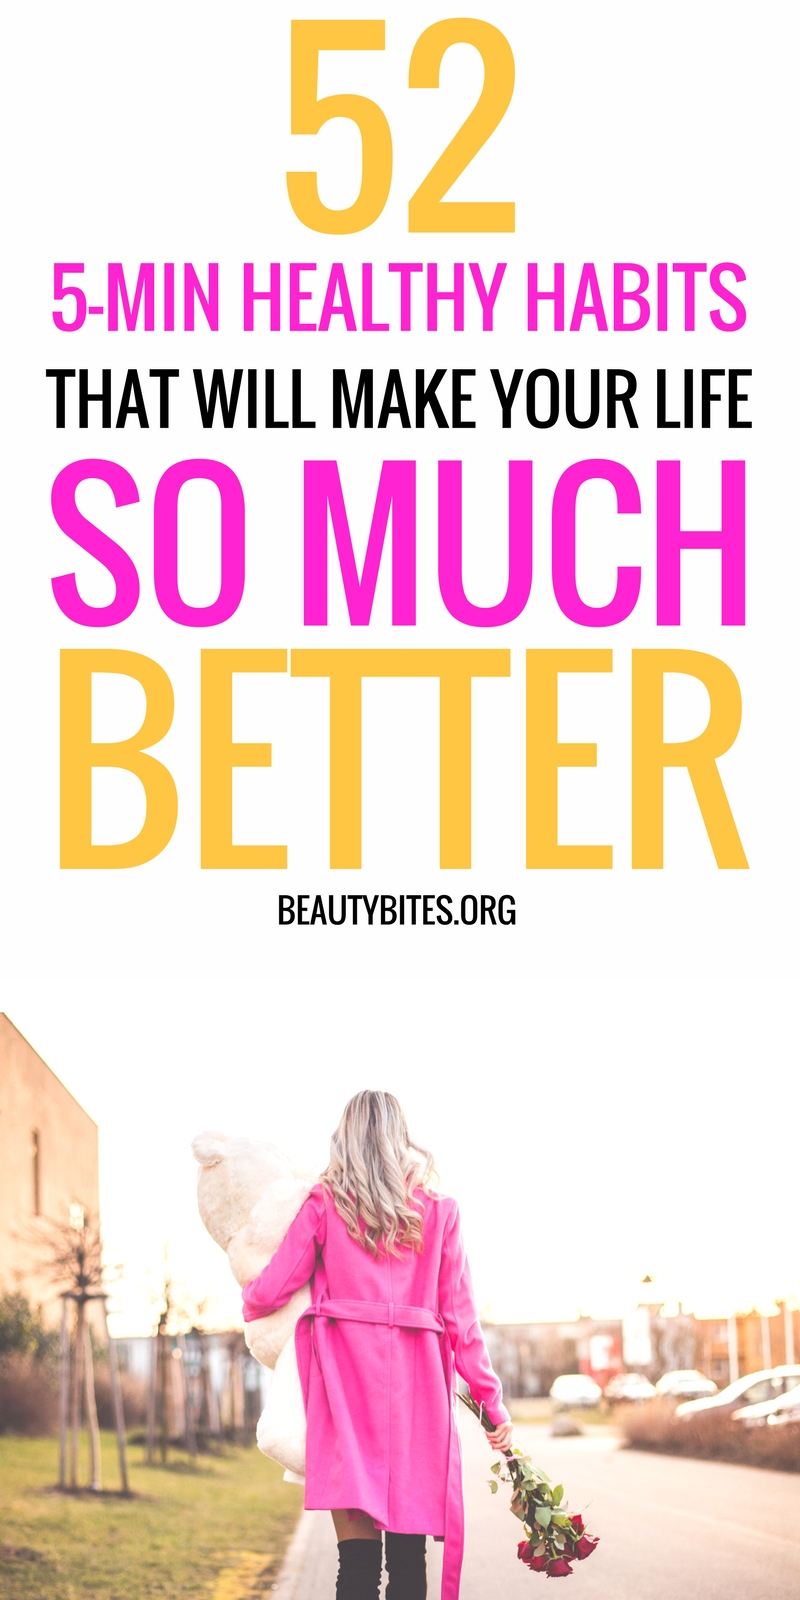 52 healthy habits to make you feel good and make life so much better! Get organized, eat healthy, reduce stress & so much more!